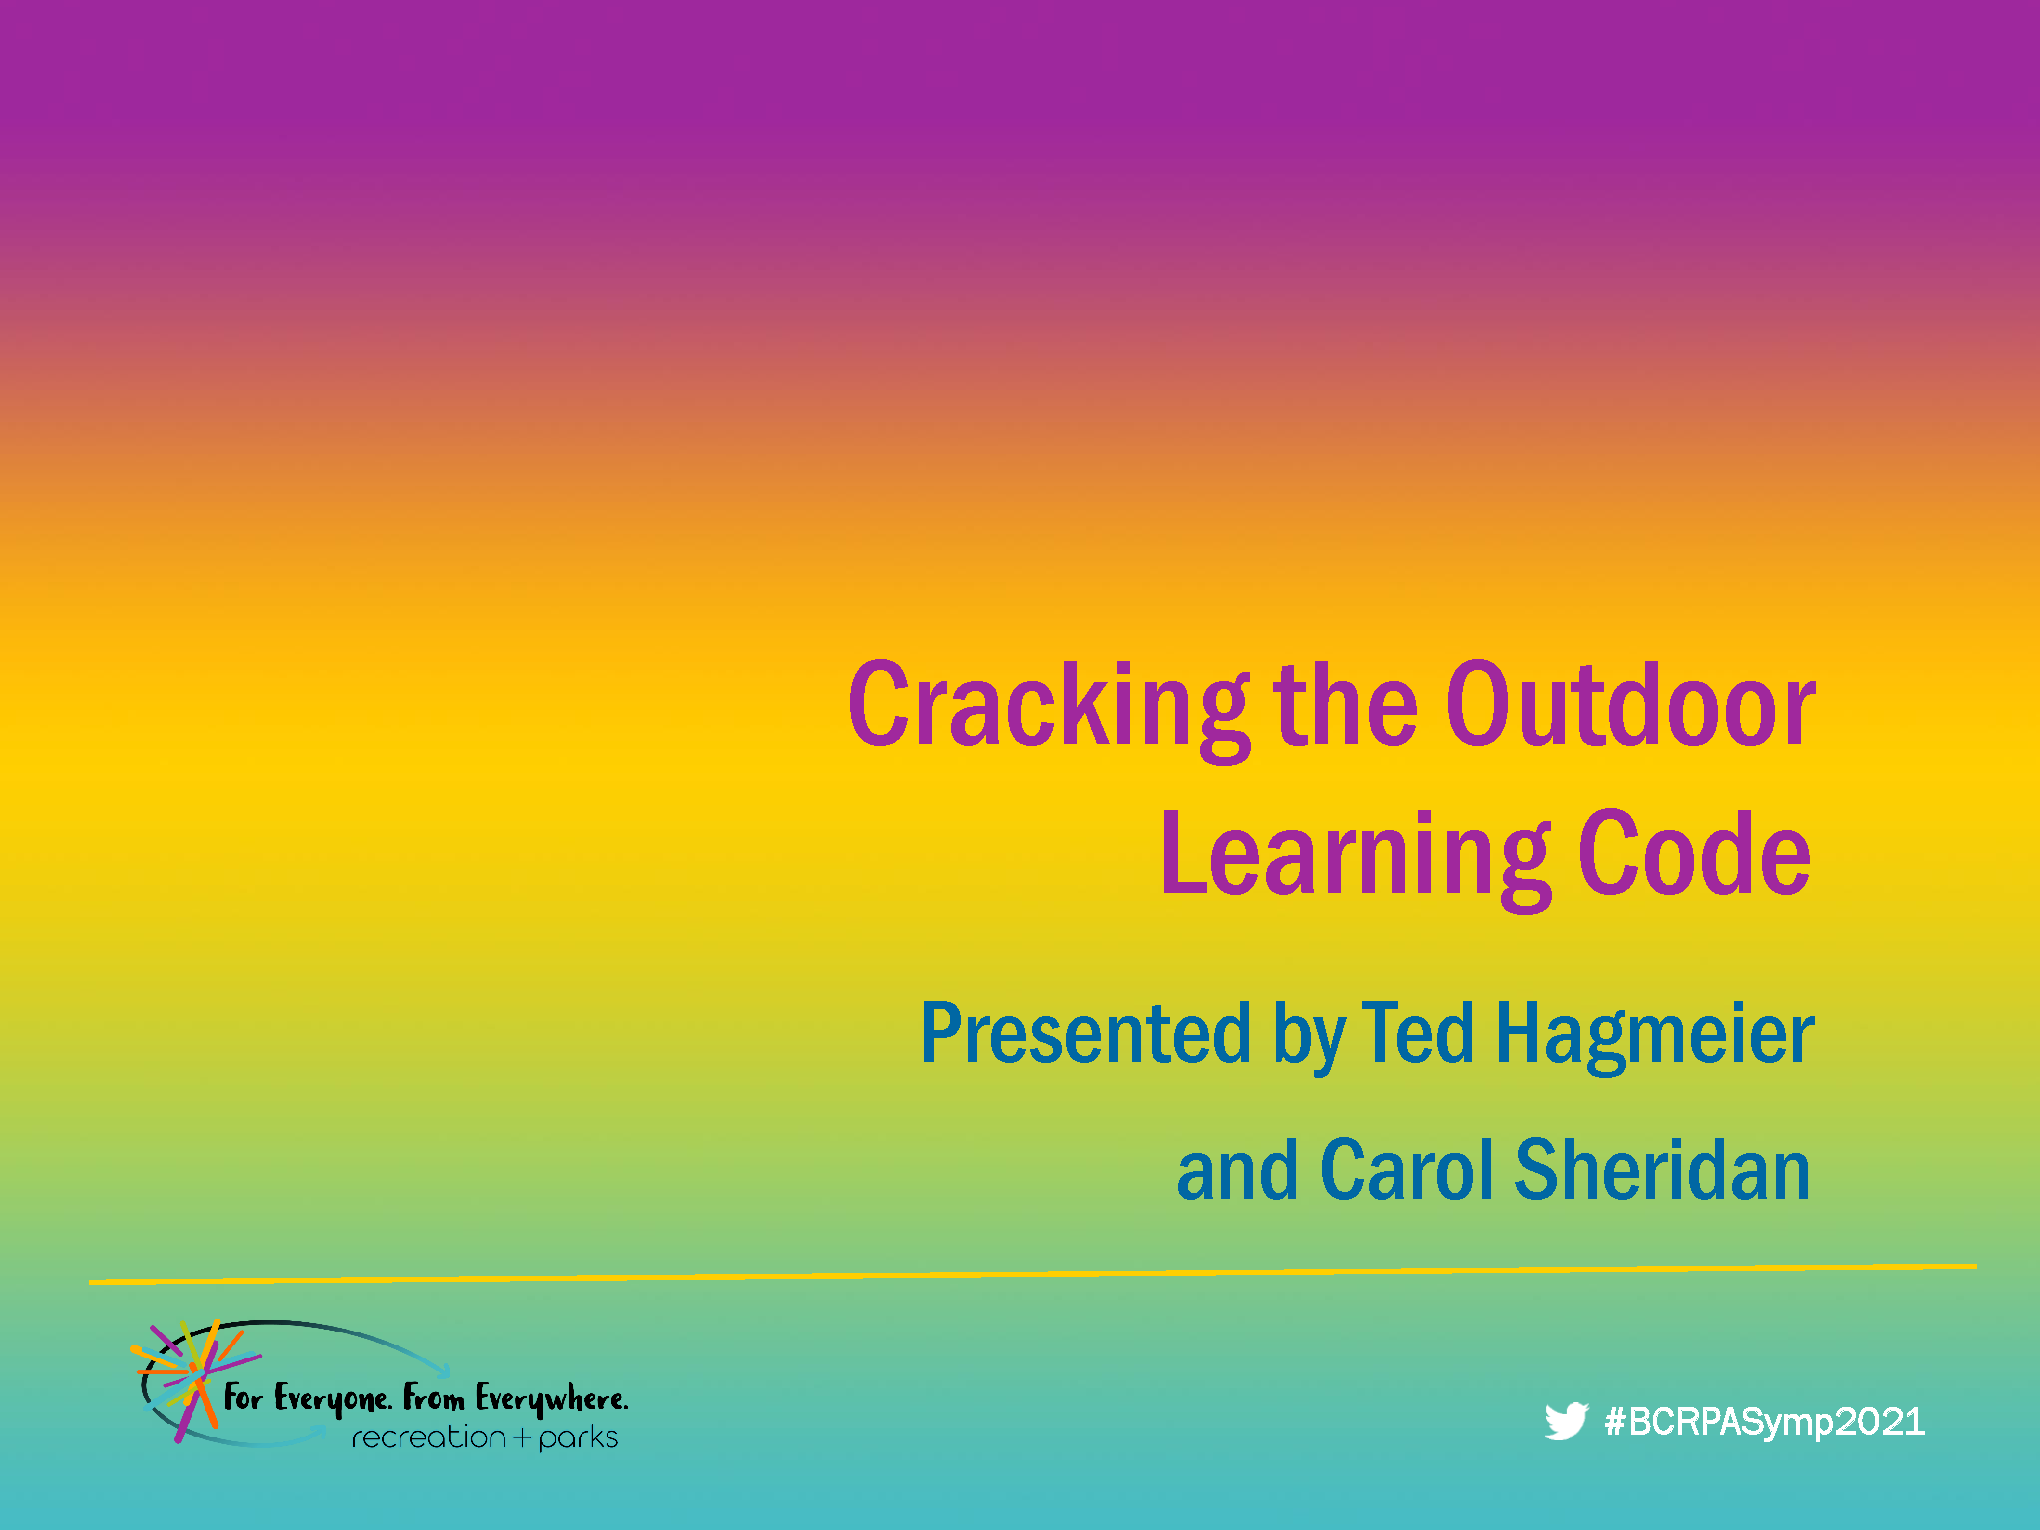 Cracking the Outdoor Learning Code